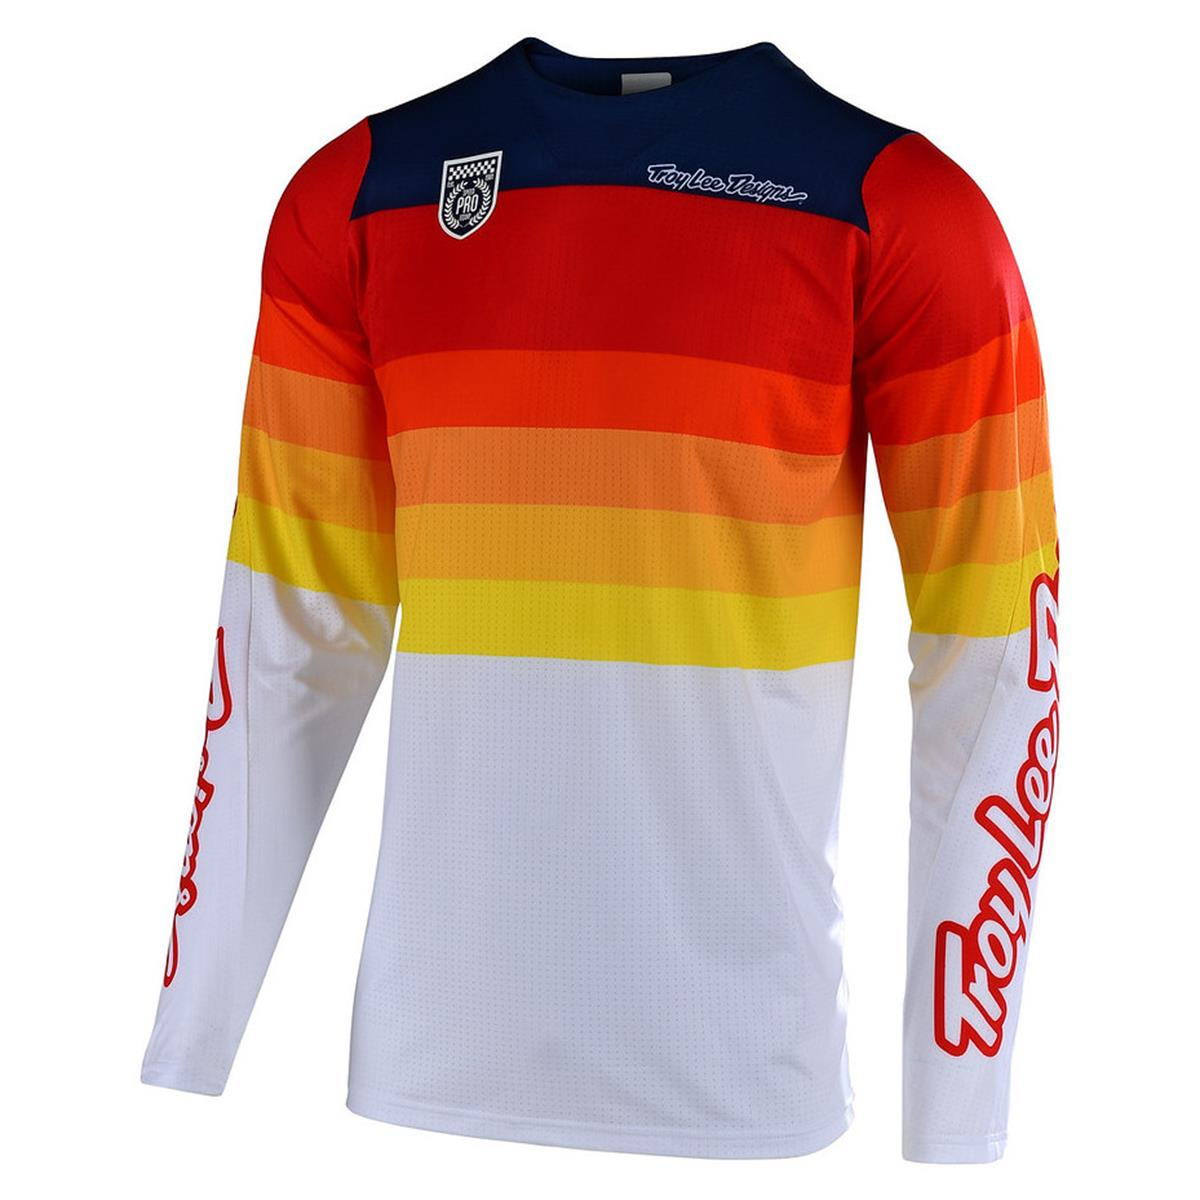 Troy Lee Designs Jersey SE Pro Mirage - Orange